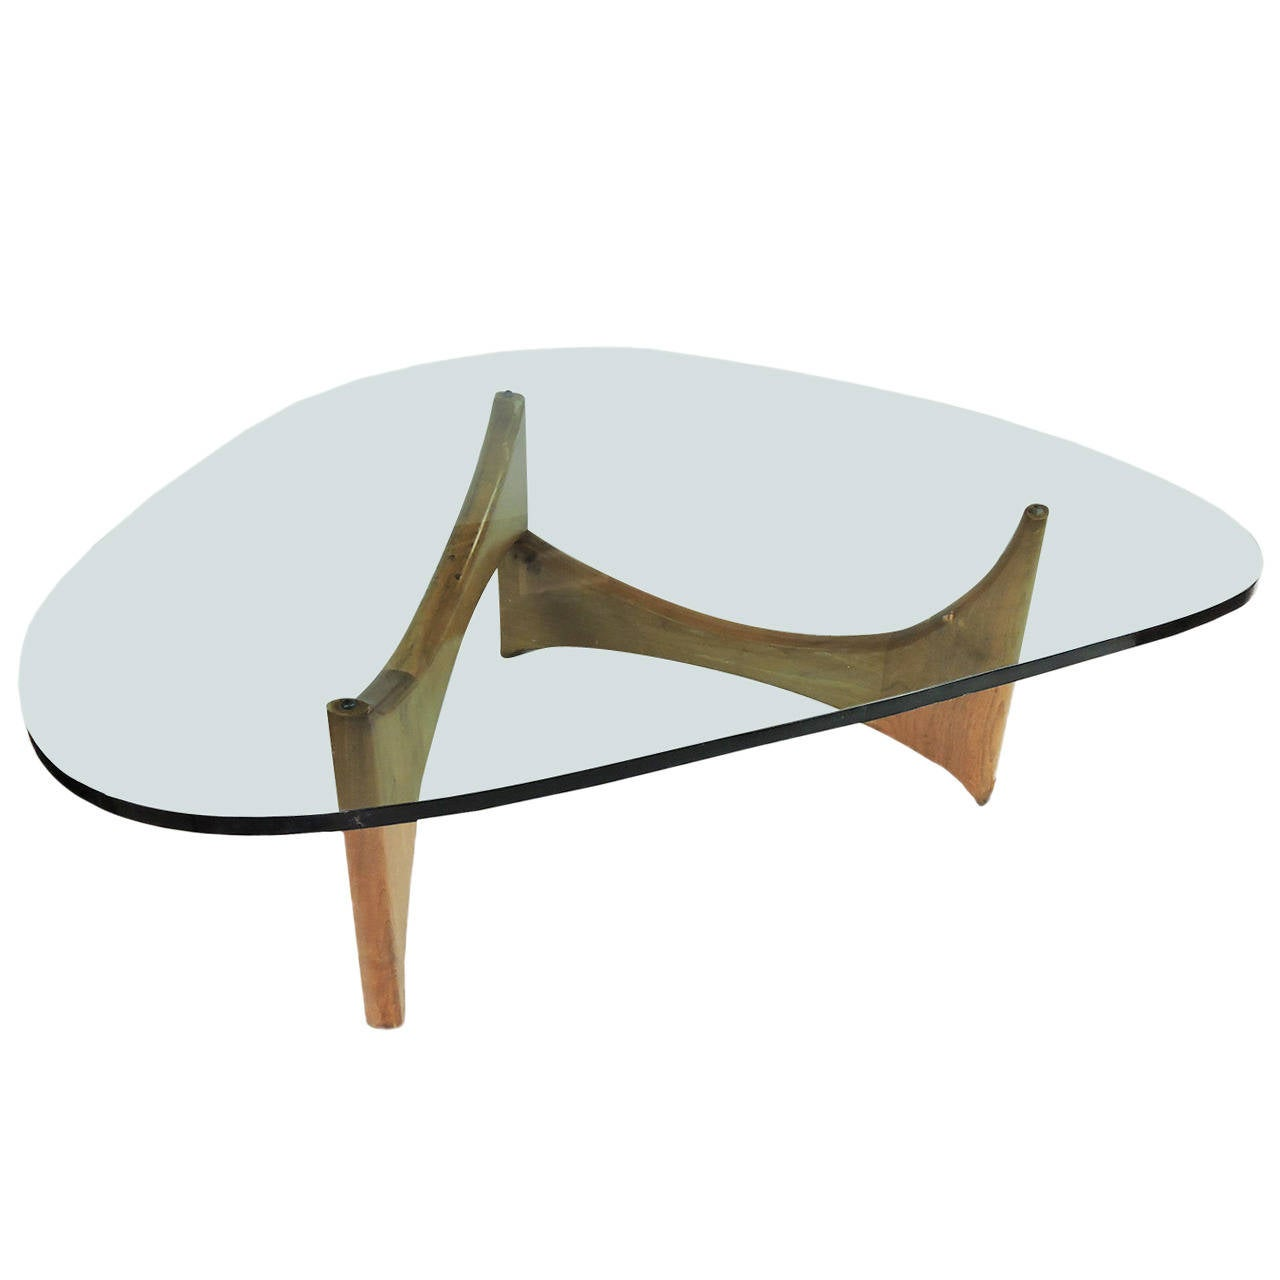 midcentury modern glass and wood coffee table for sale at stdibs - midcentury modern glass and wood coffee table